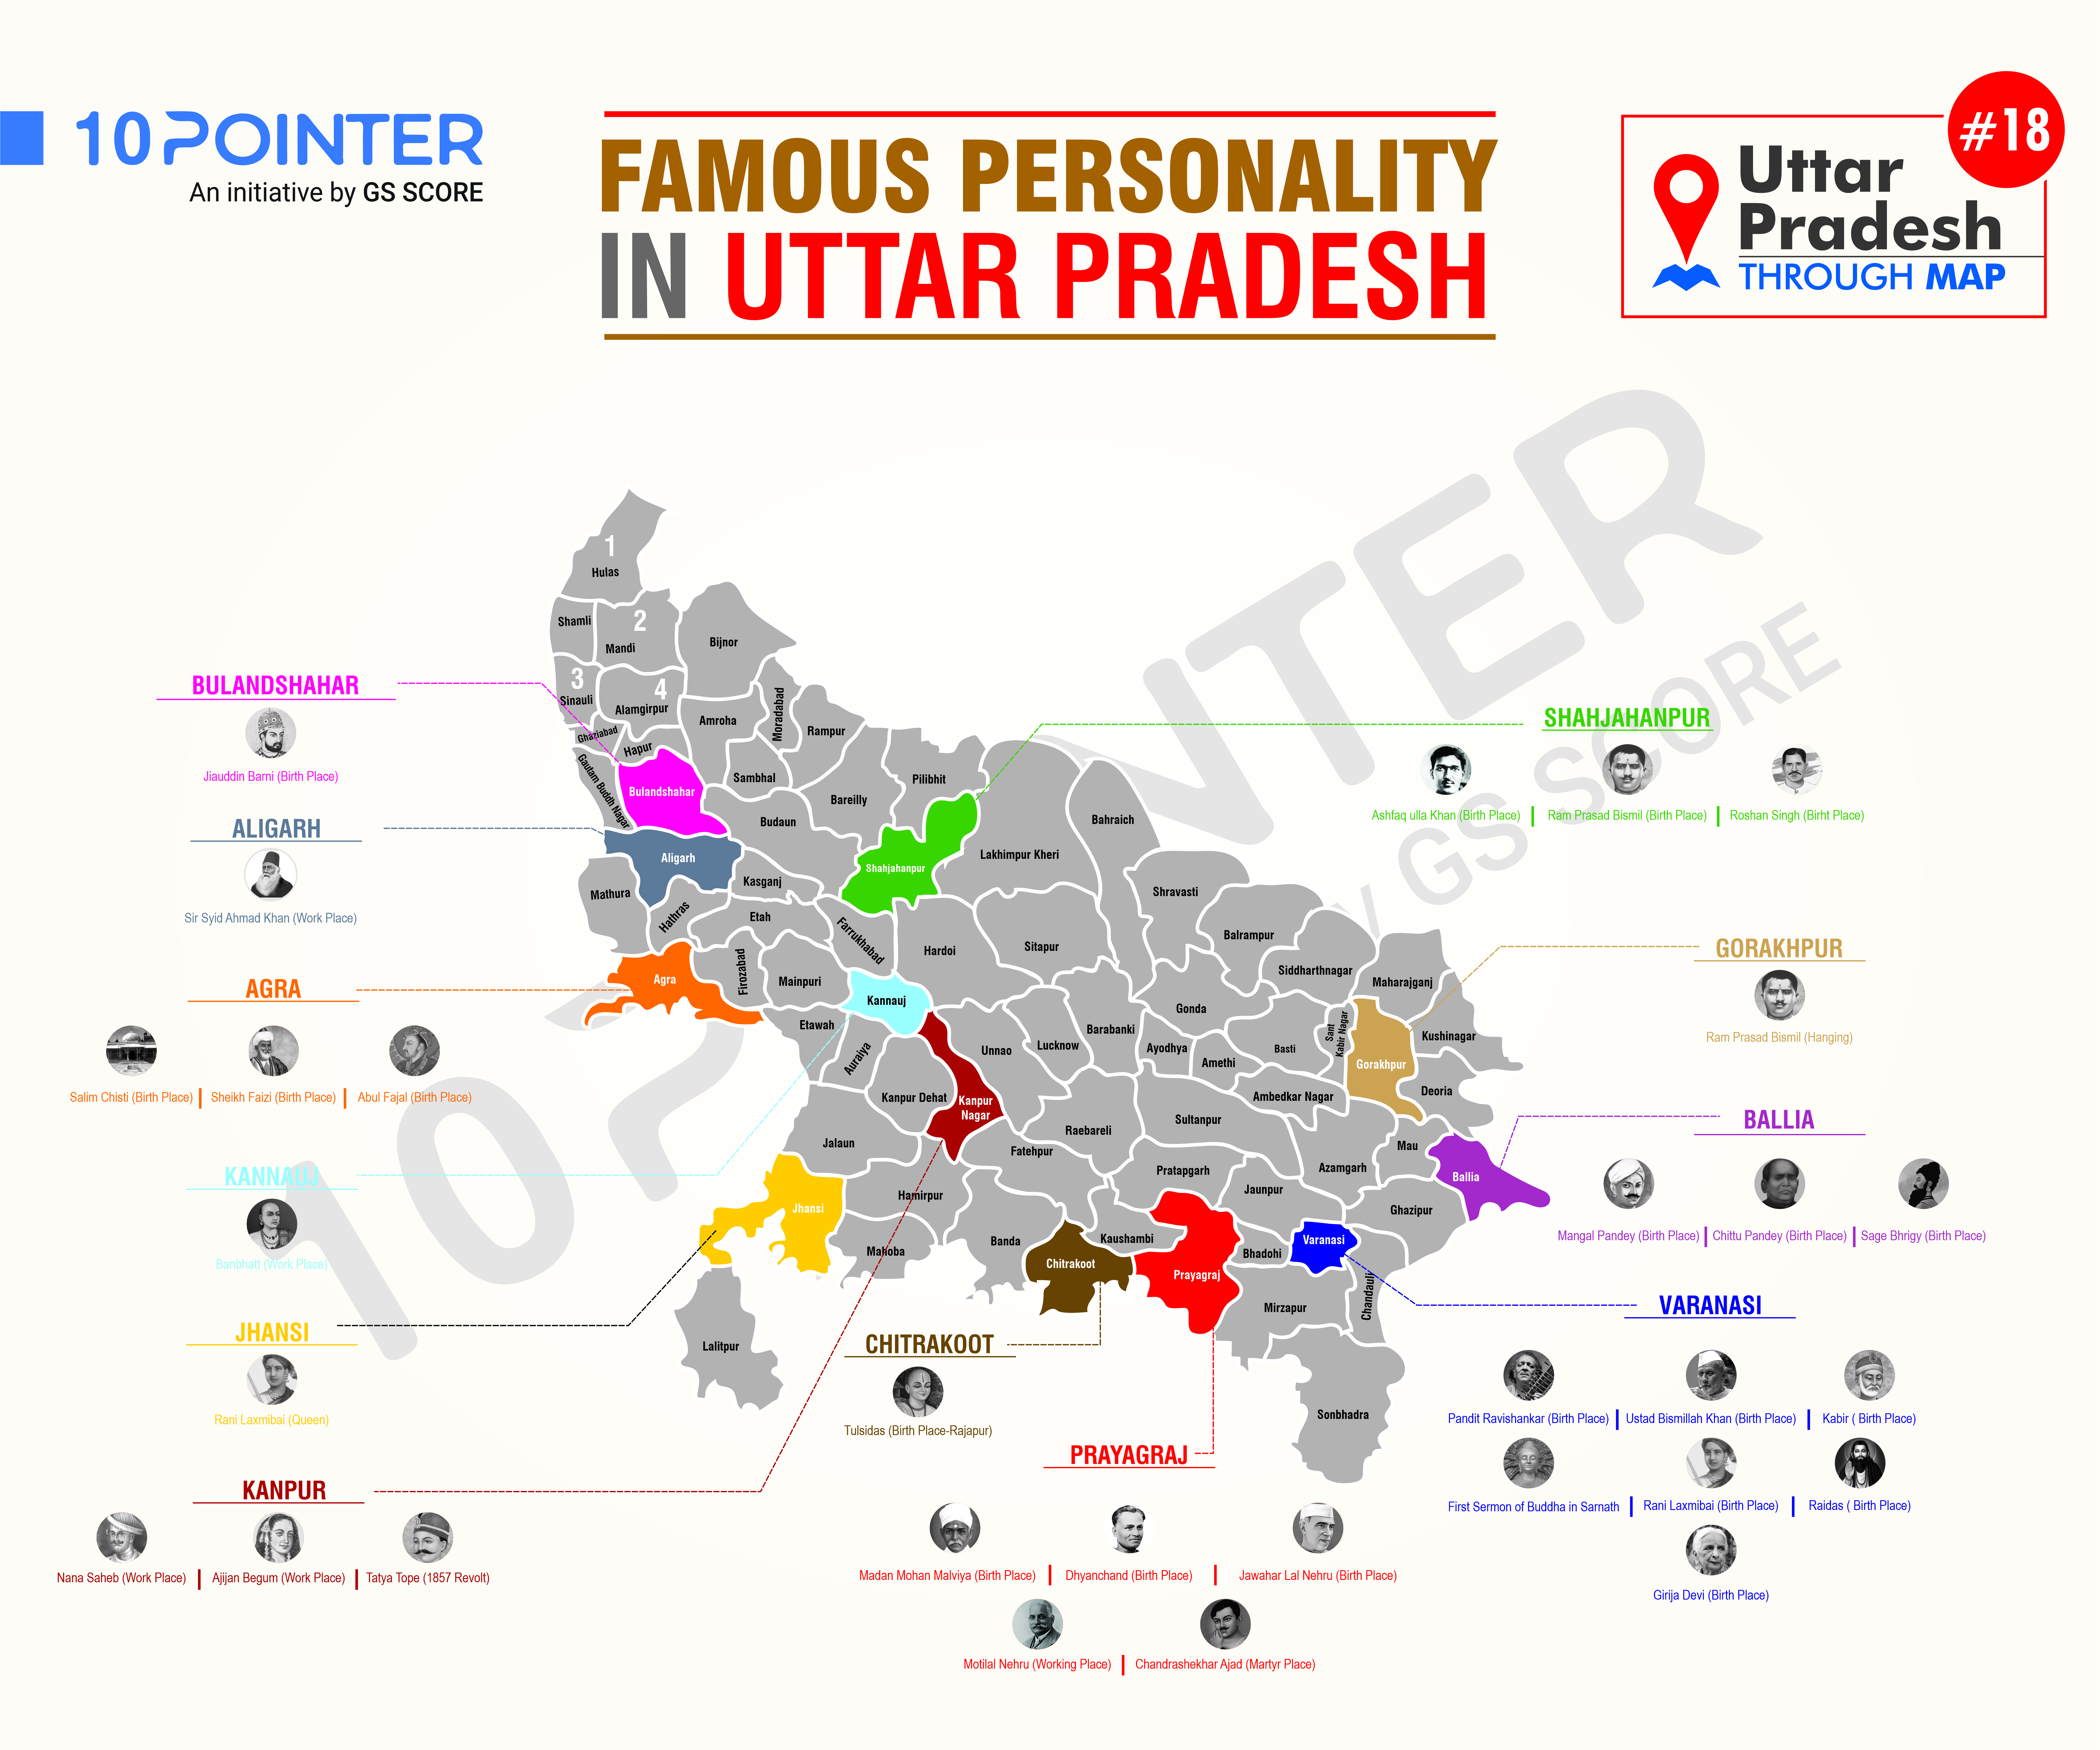 Famous Personality in Utter Pradesh